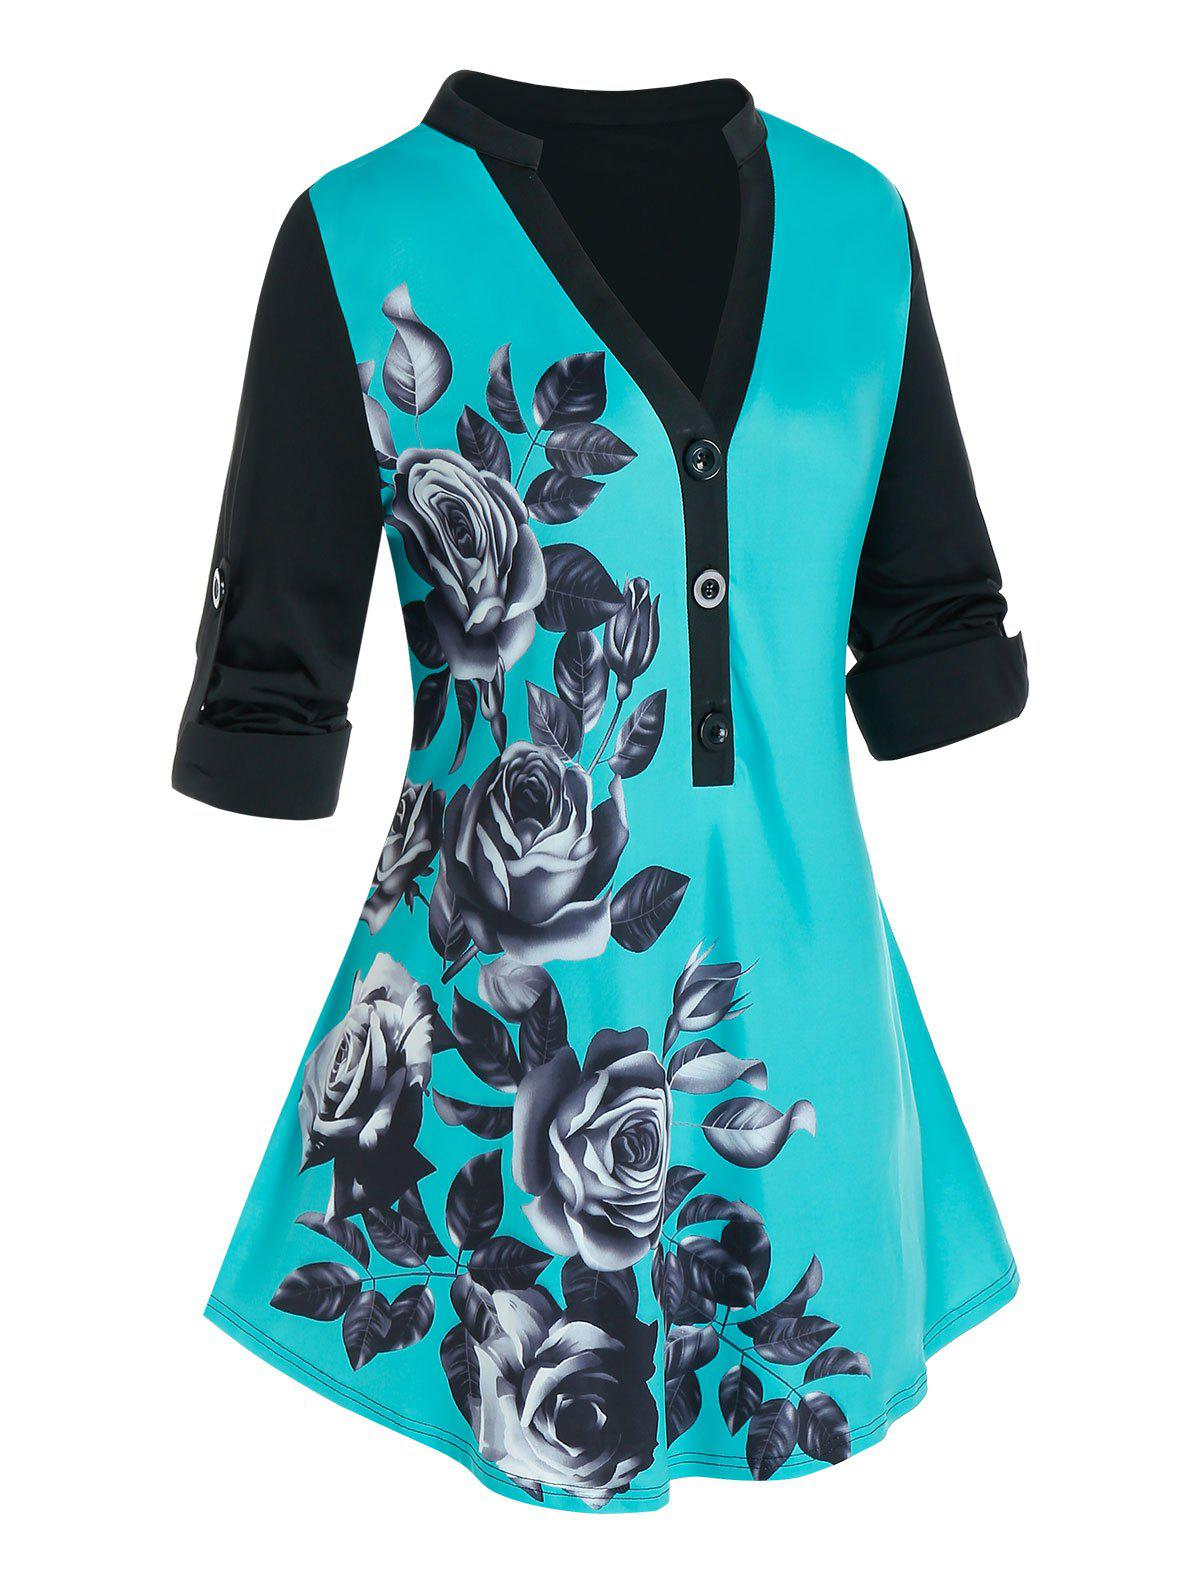 Plus Size Colorblock Flower Printed Blouse - MACAW BLUE GREEN 5X